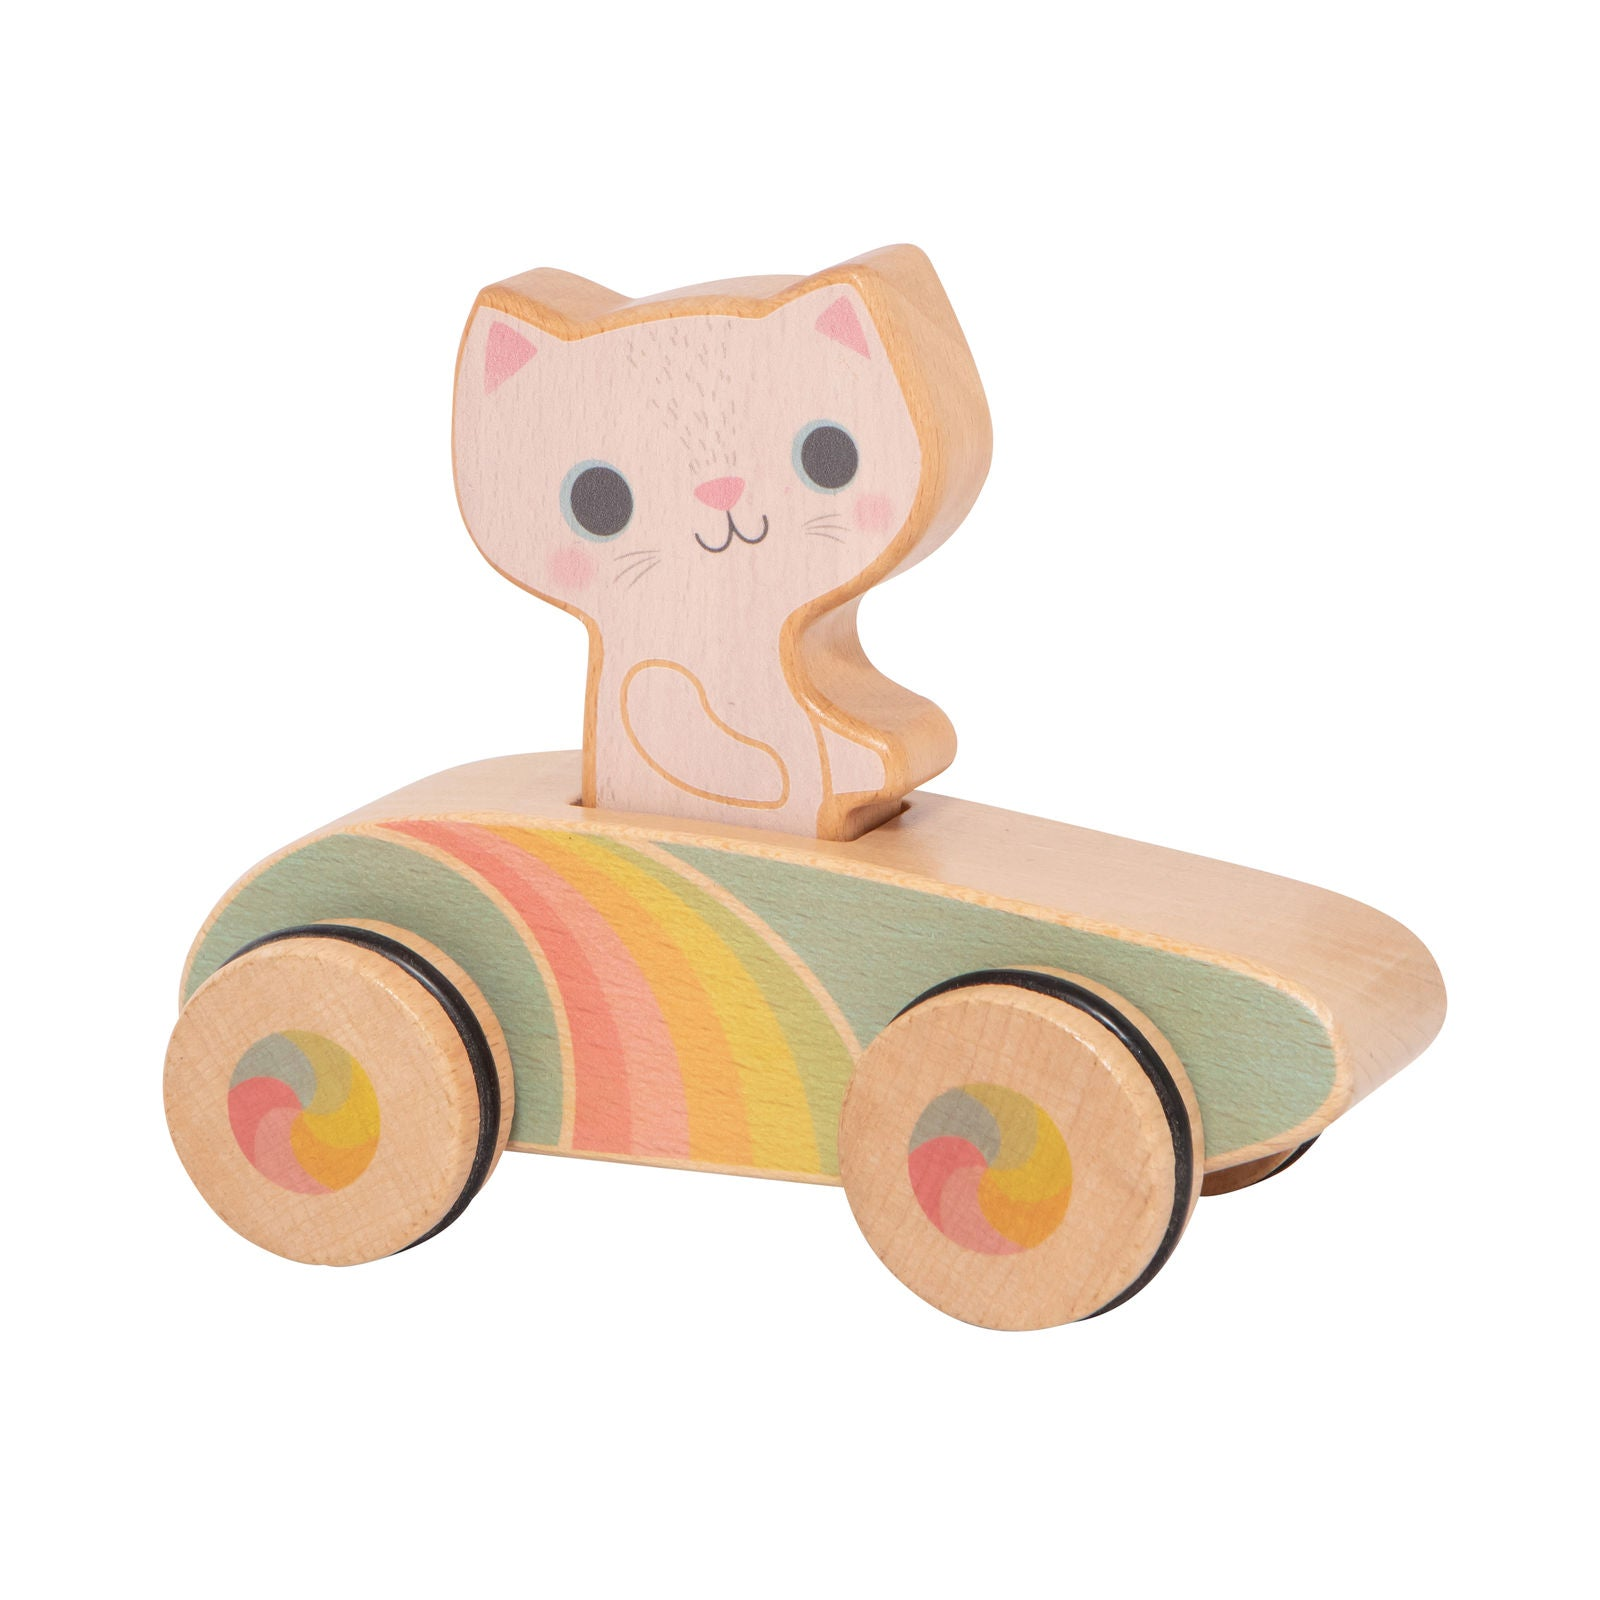 Rainbow Roller - Crusin' Kitty